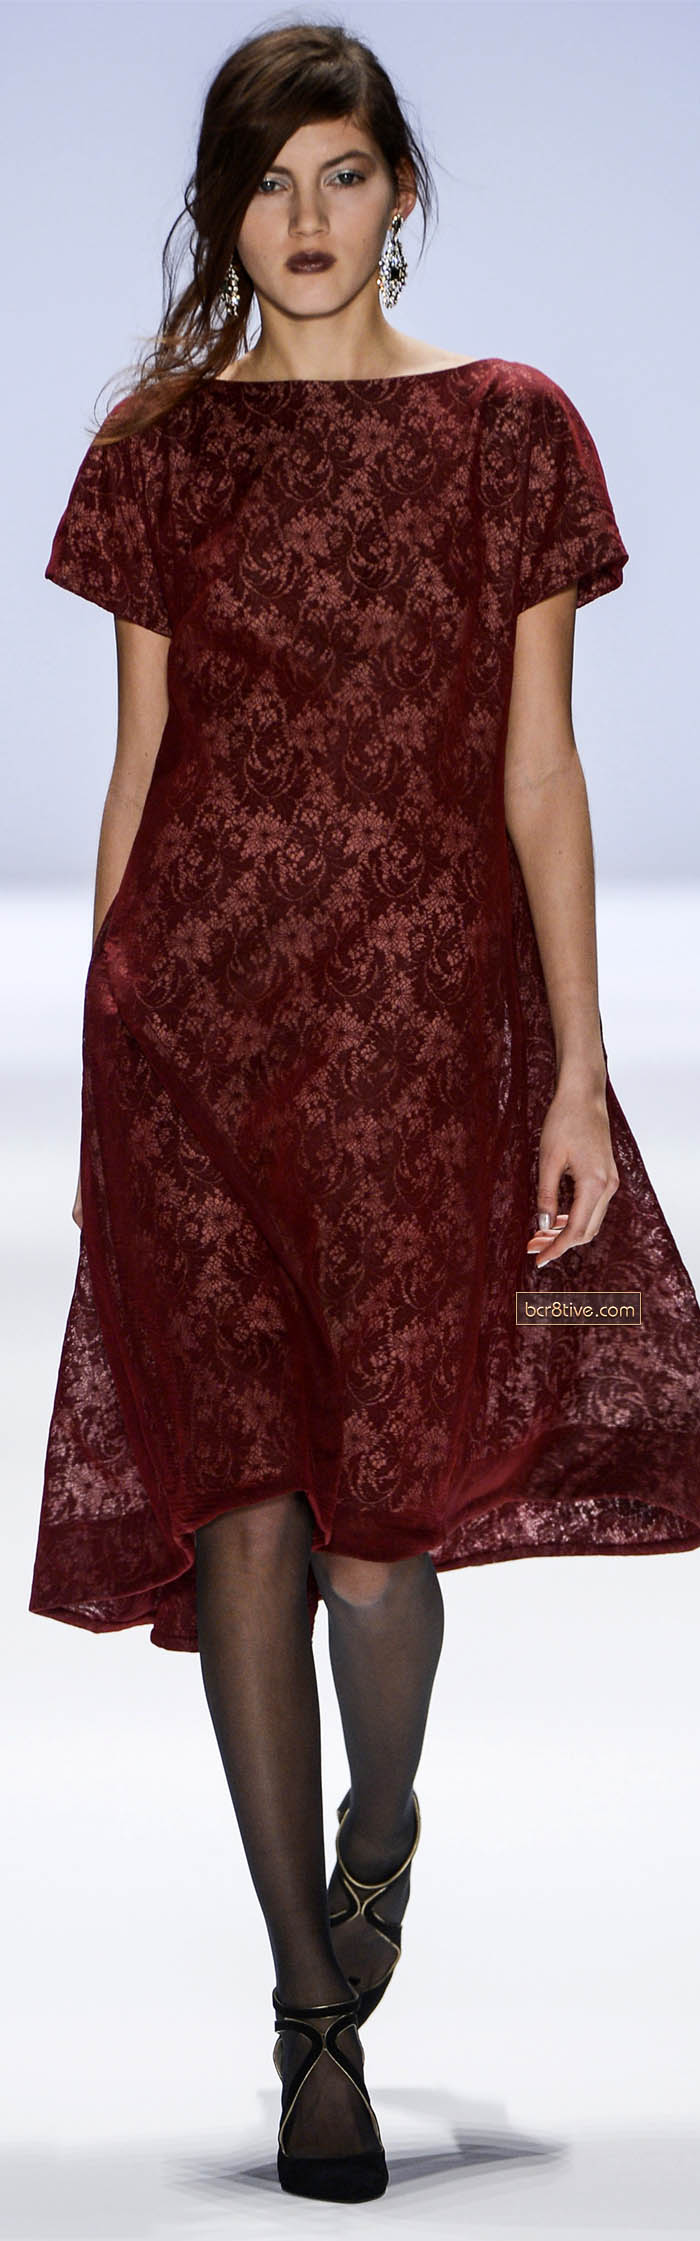 Tadashi Shoji Fall Winter 2013 New York Fashion Week